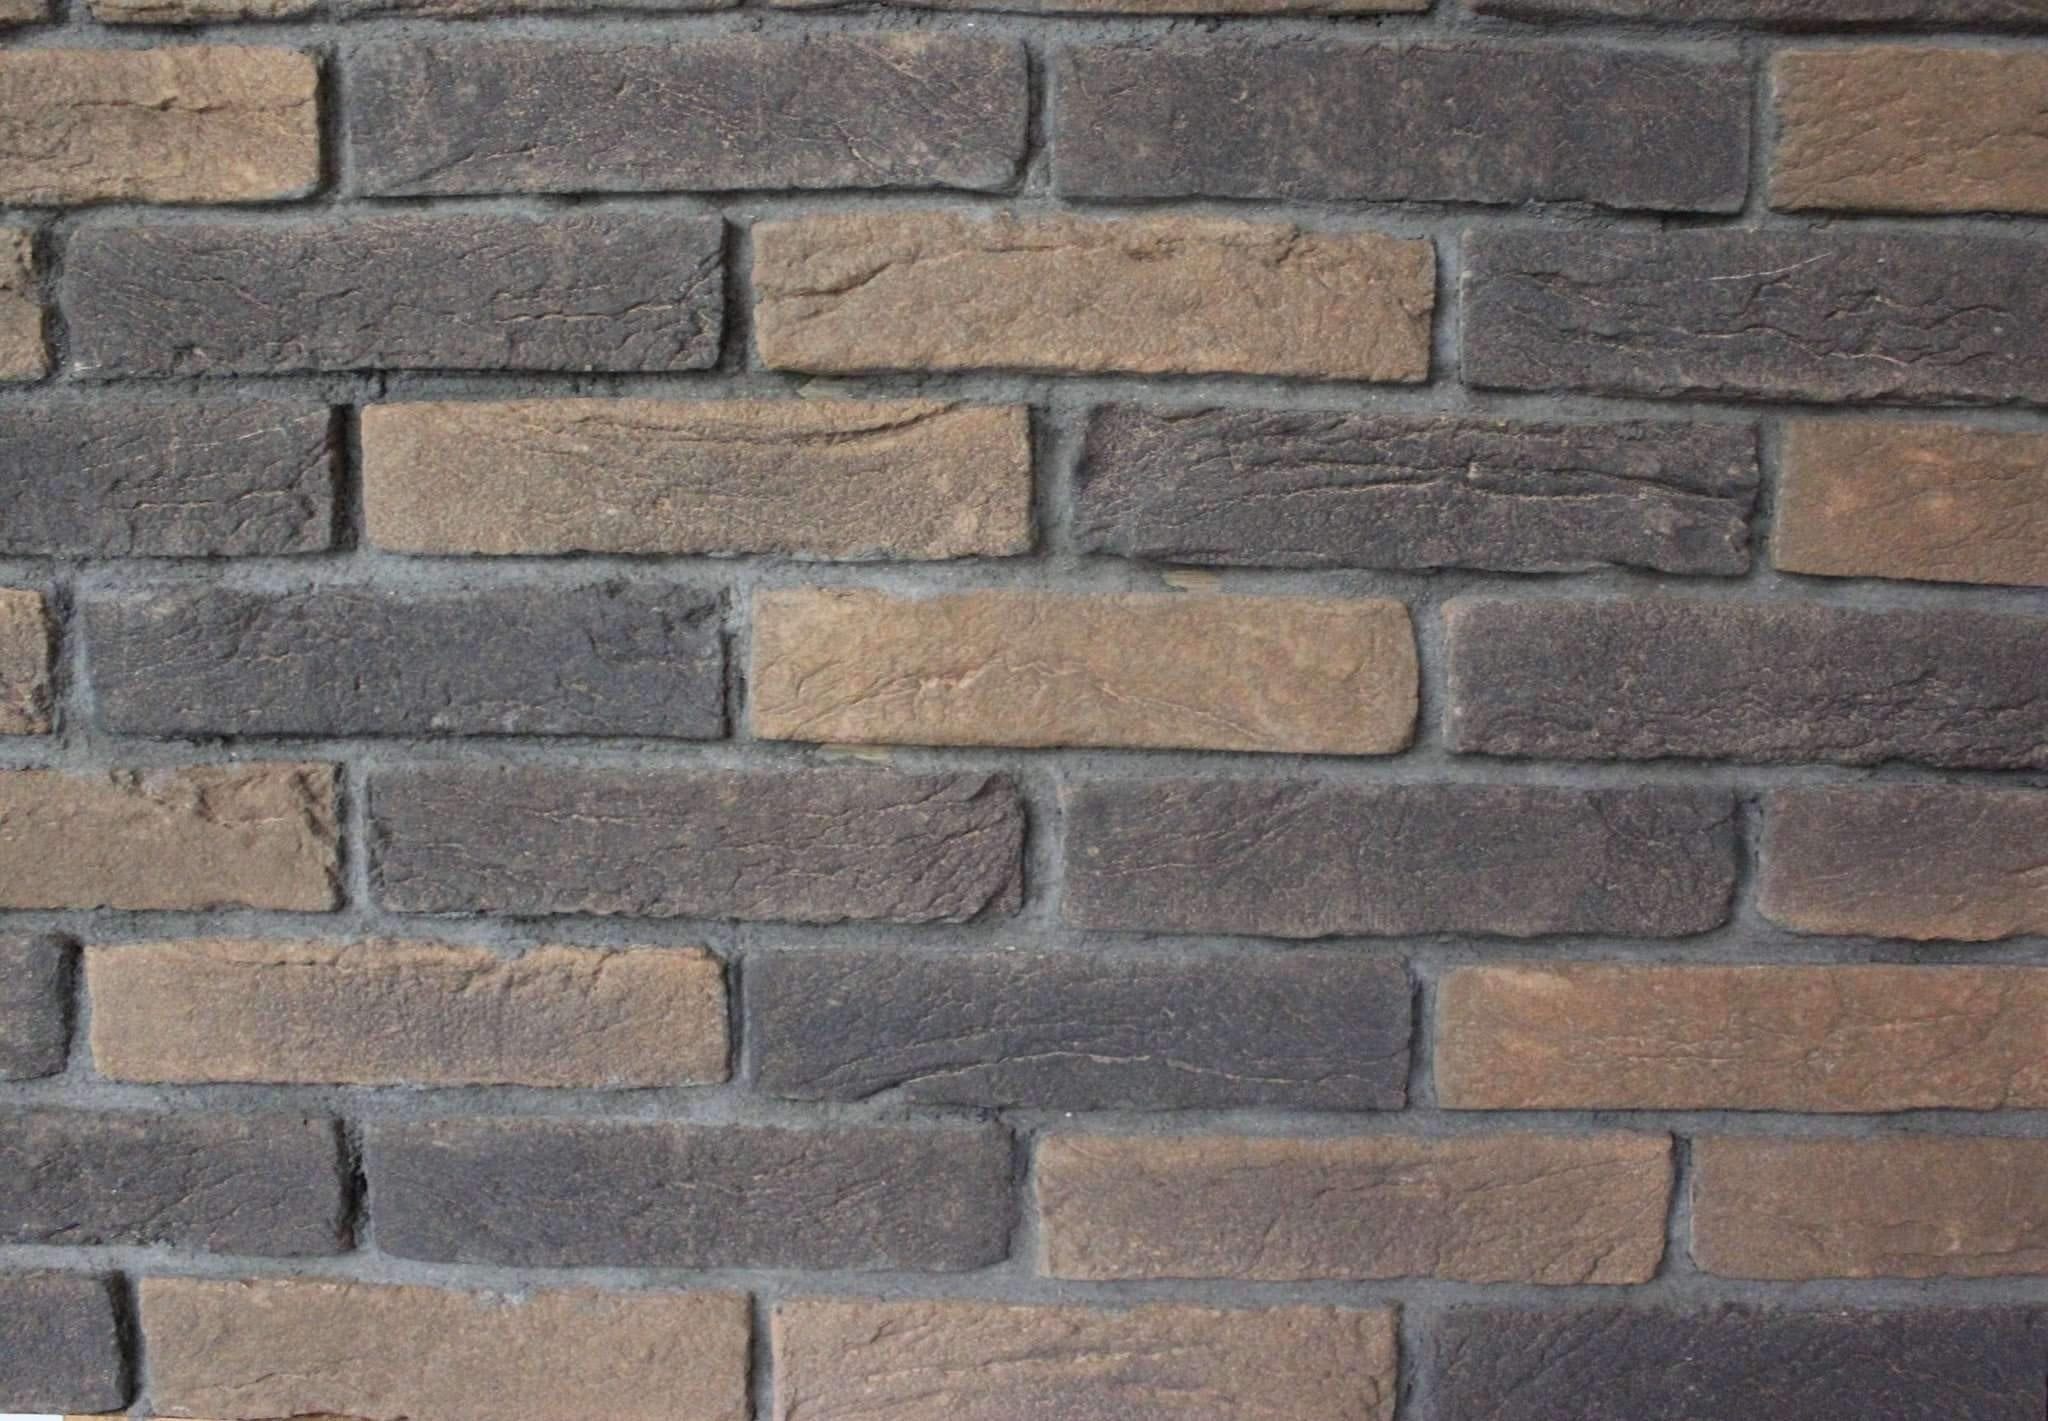 Sweet Brown - Country Brick cheap stone veneer clearance - Discount Stones wholesale stone veneer, cheap brick veneer, cultured stone for sale